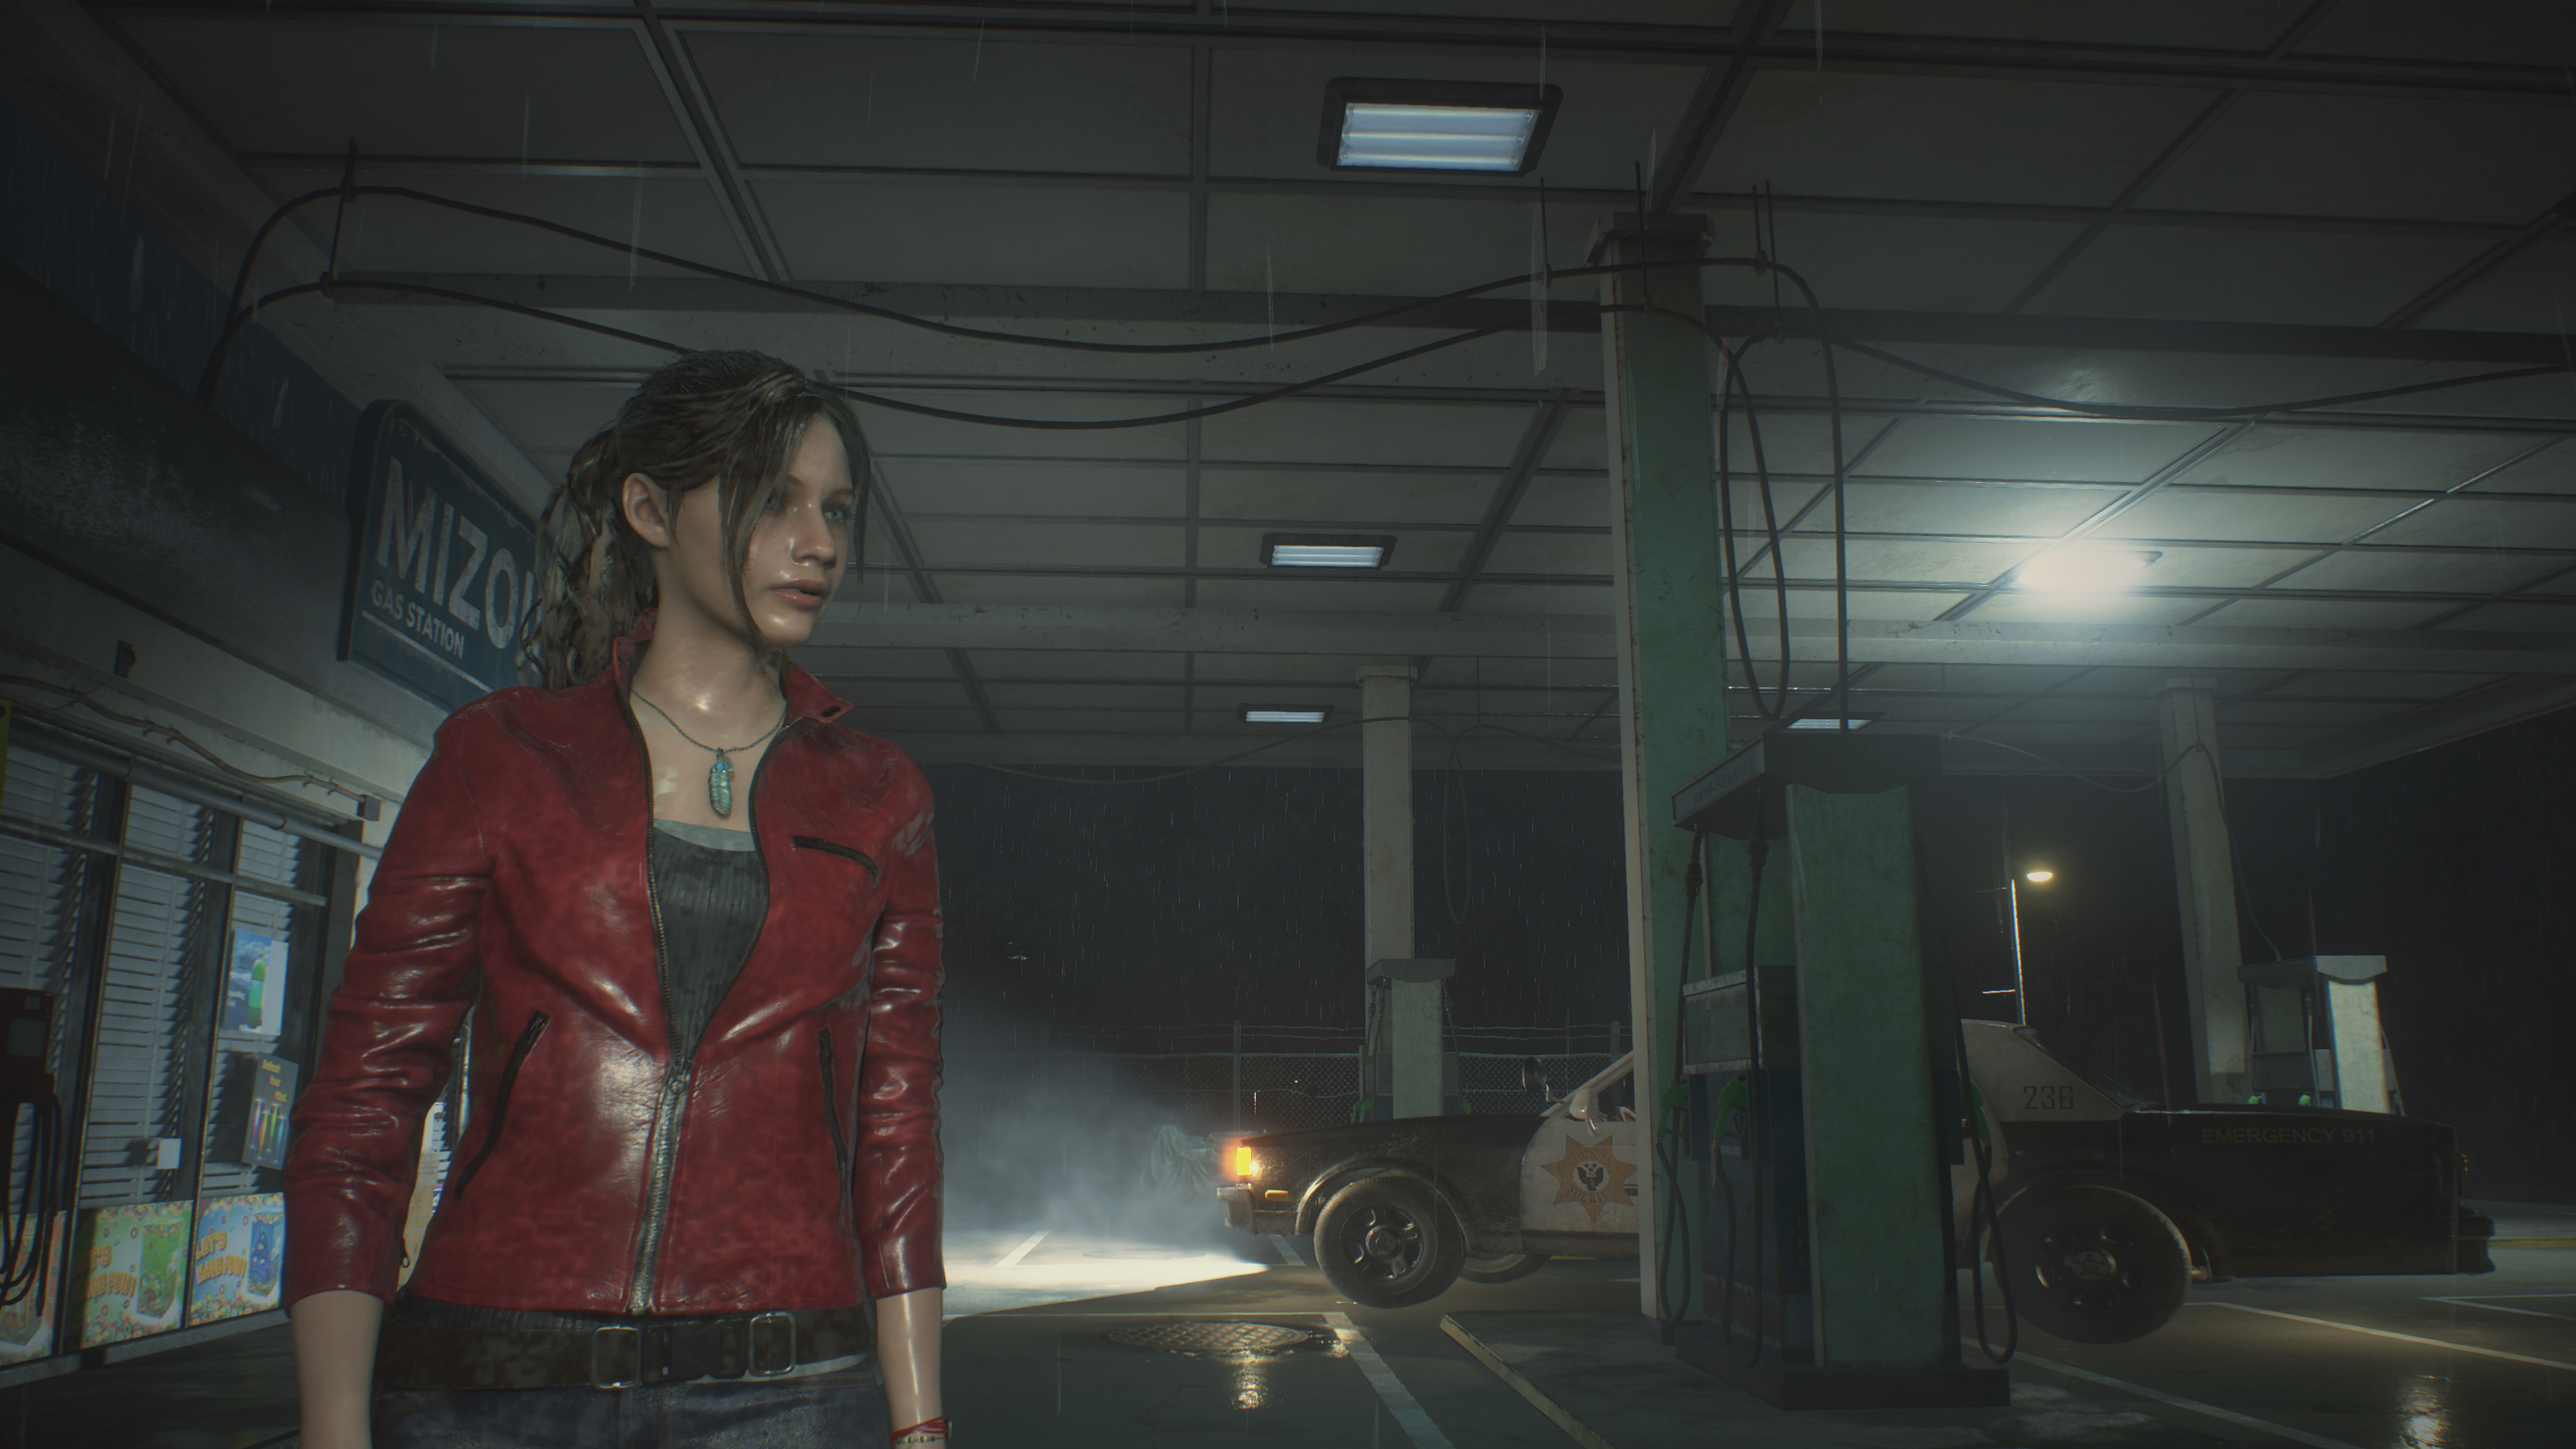 RESIDENT EVIL 2 / BIOHAZARD RE:2 Claire 4k ultra graphics Nvidia GeForce RTX 2080 - Resident Evil 2